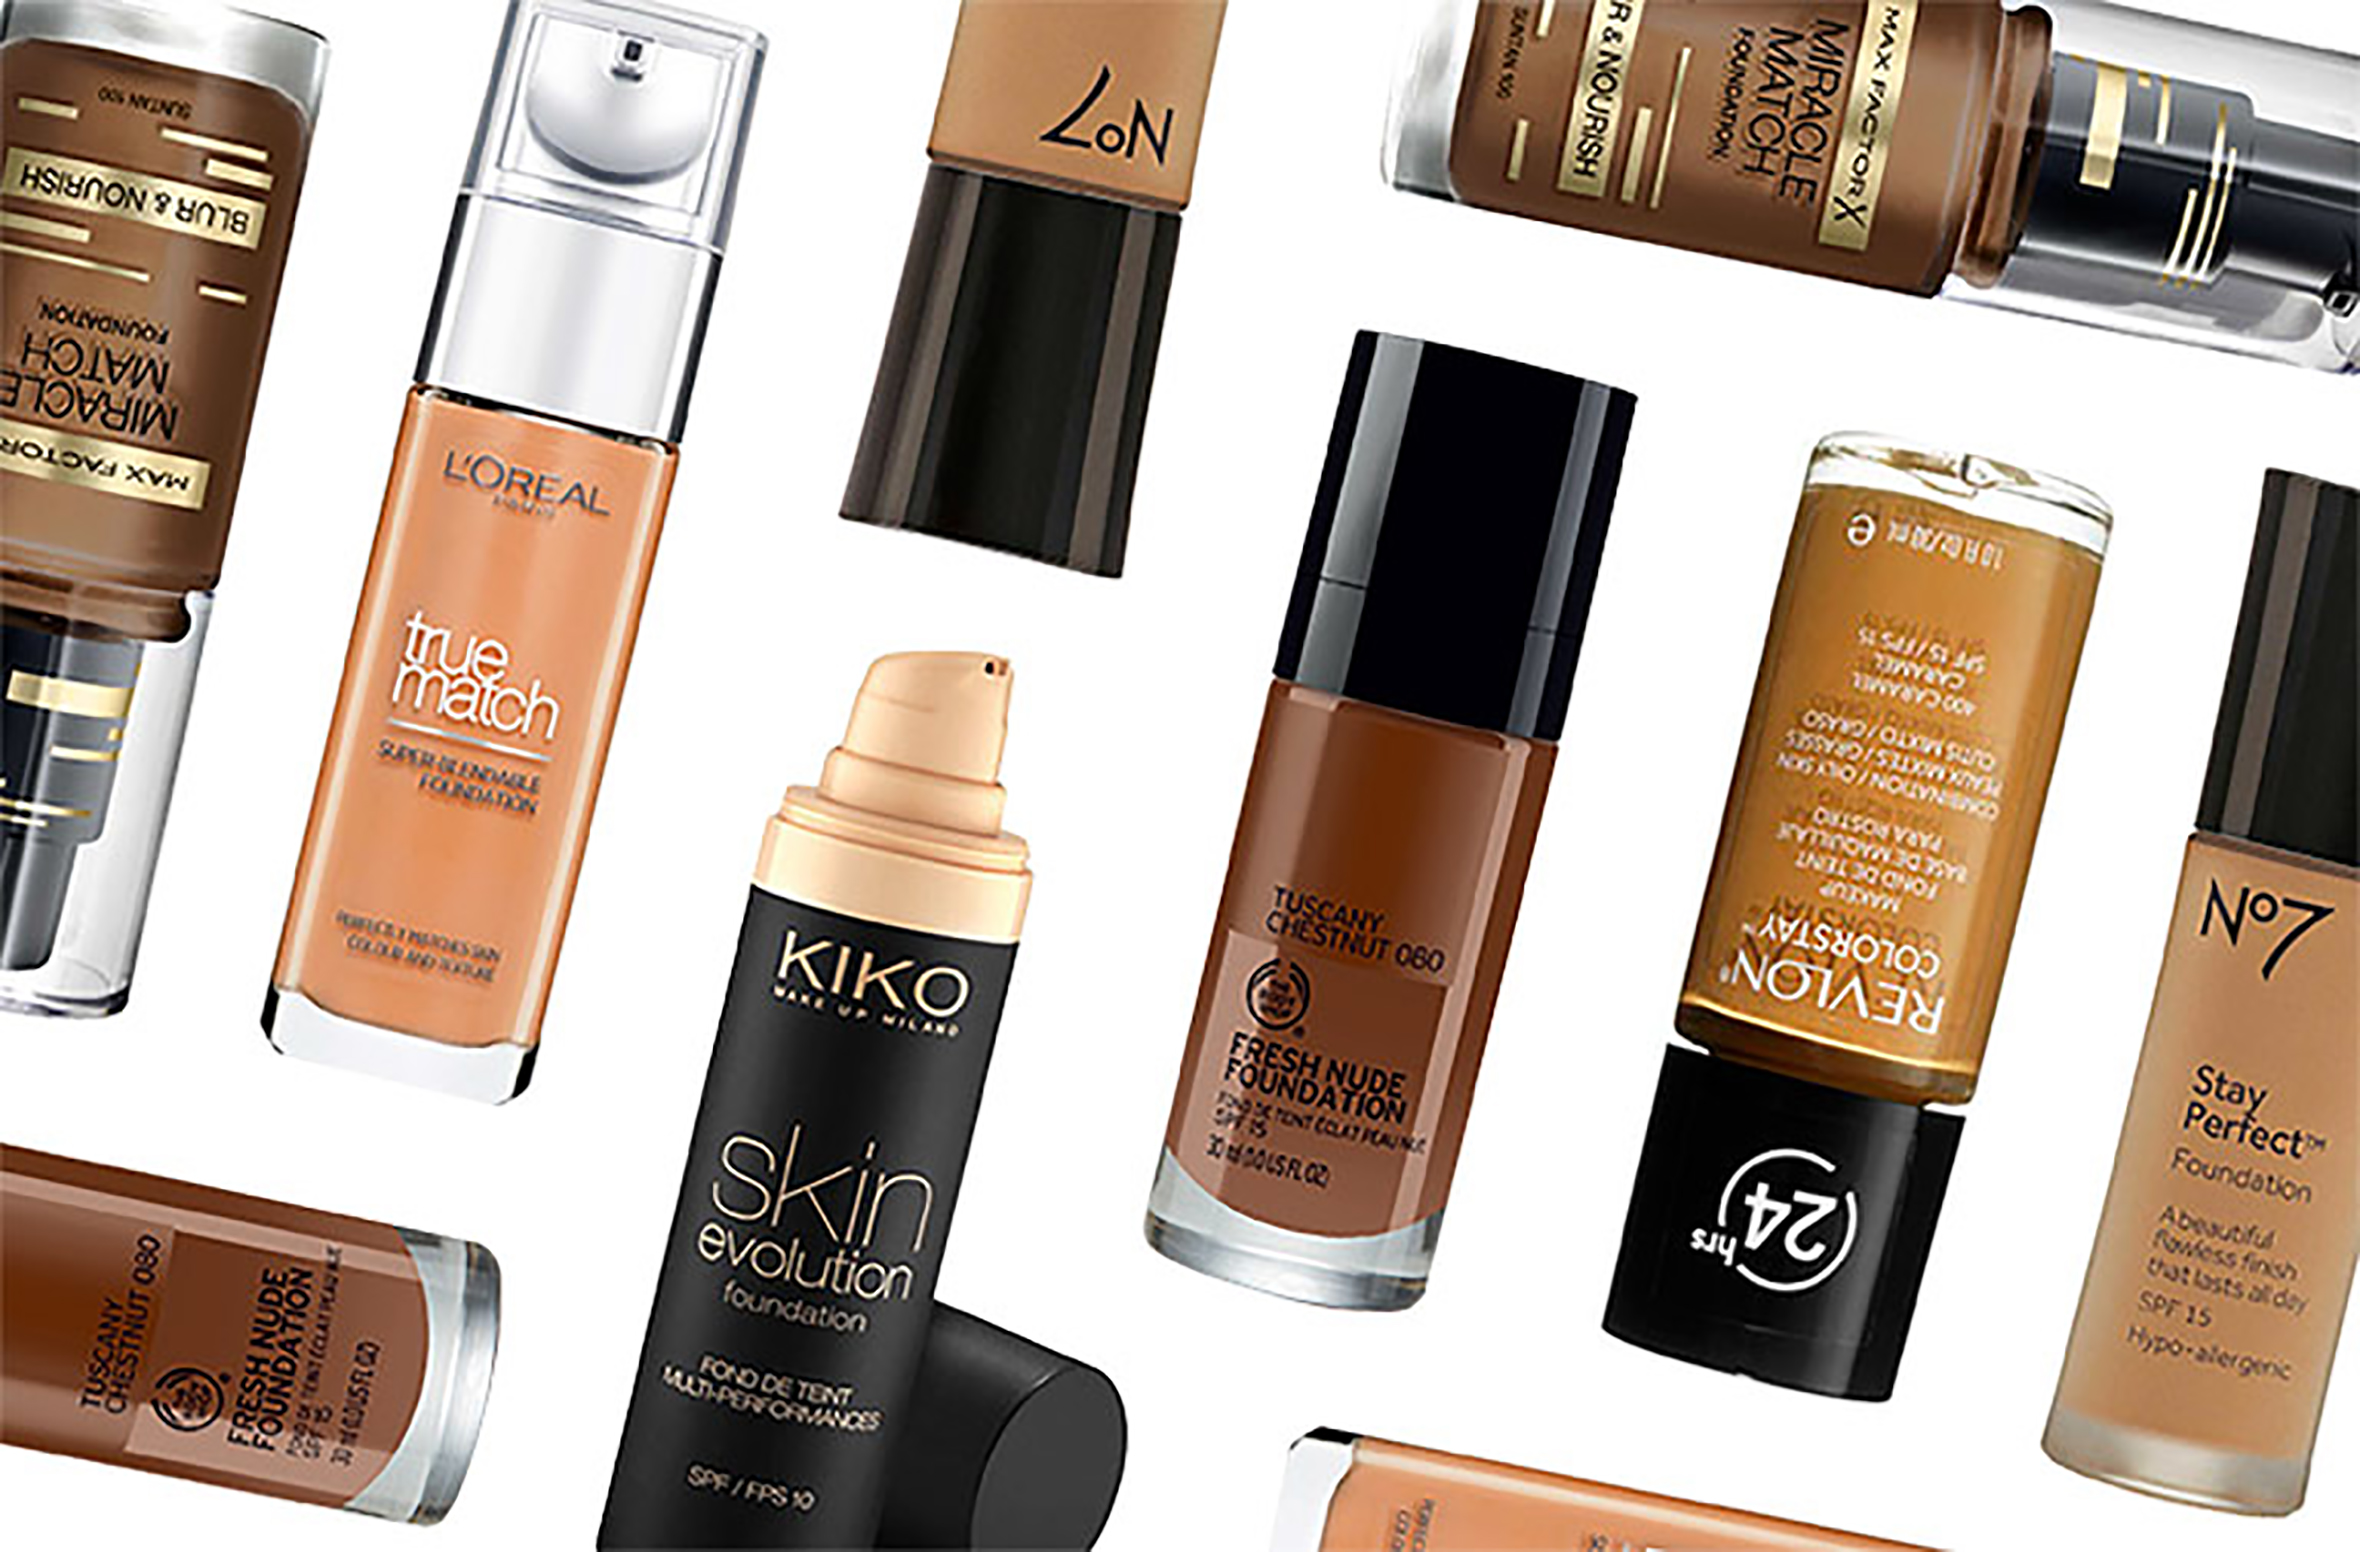 Picture of different make up foundation products from different brands